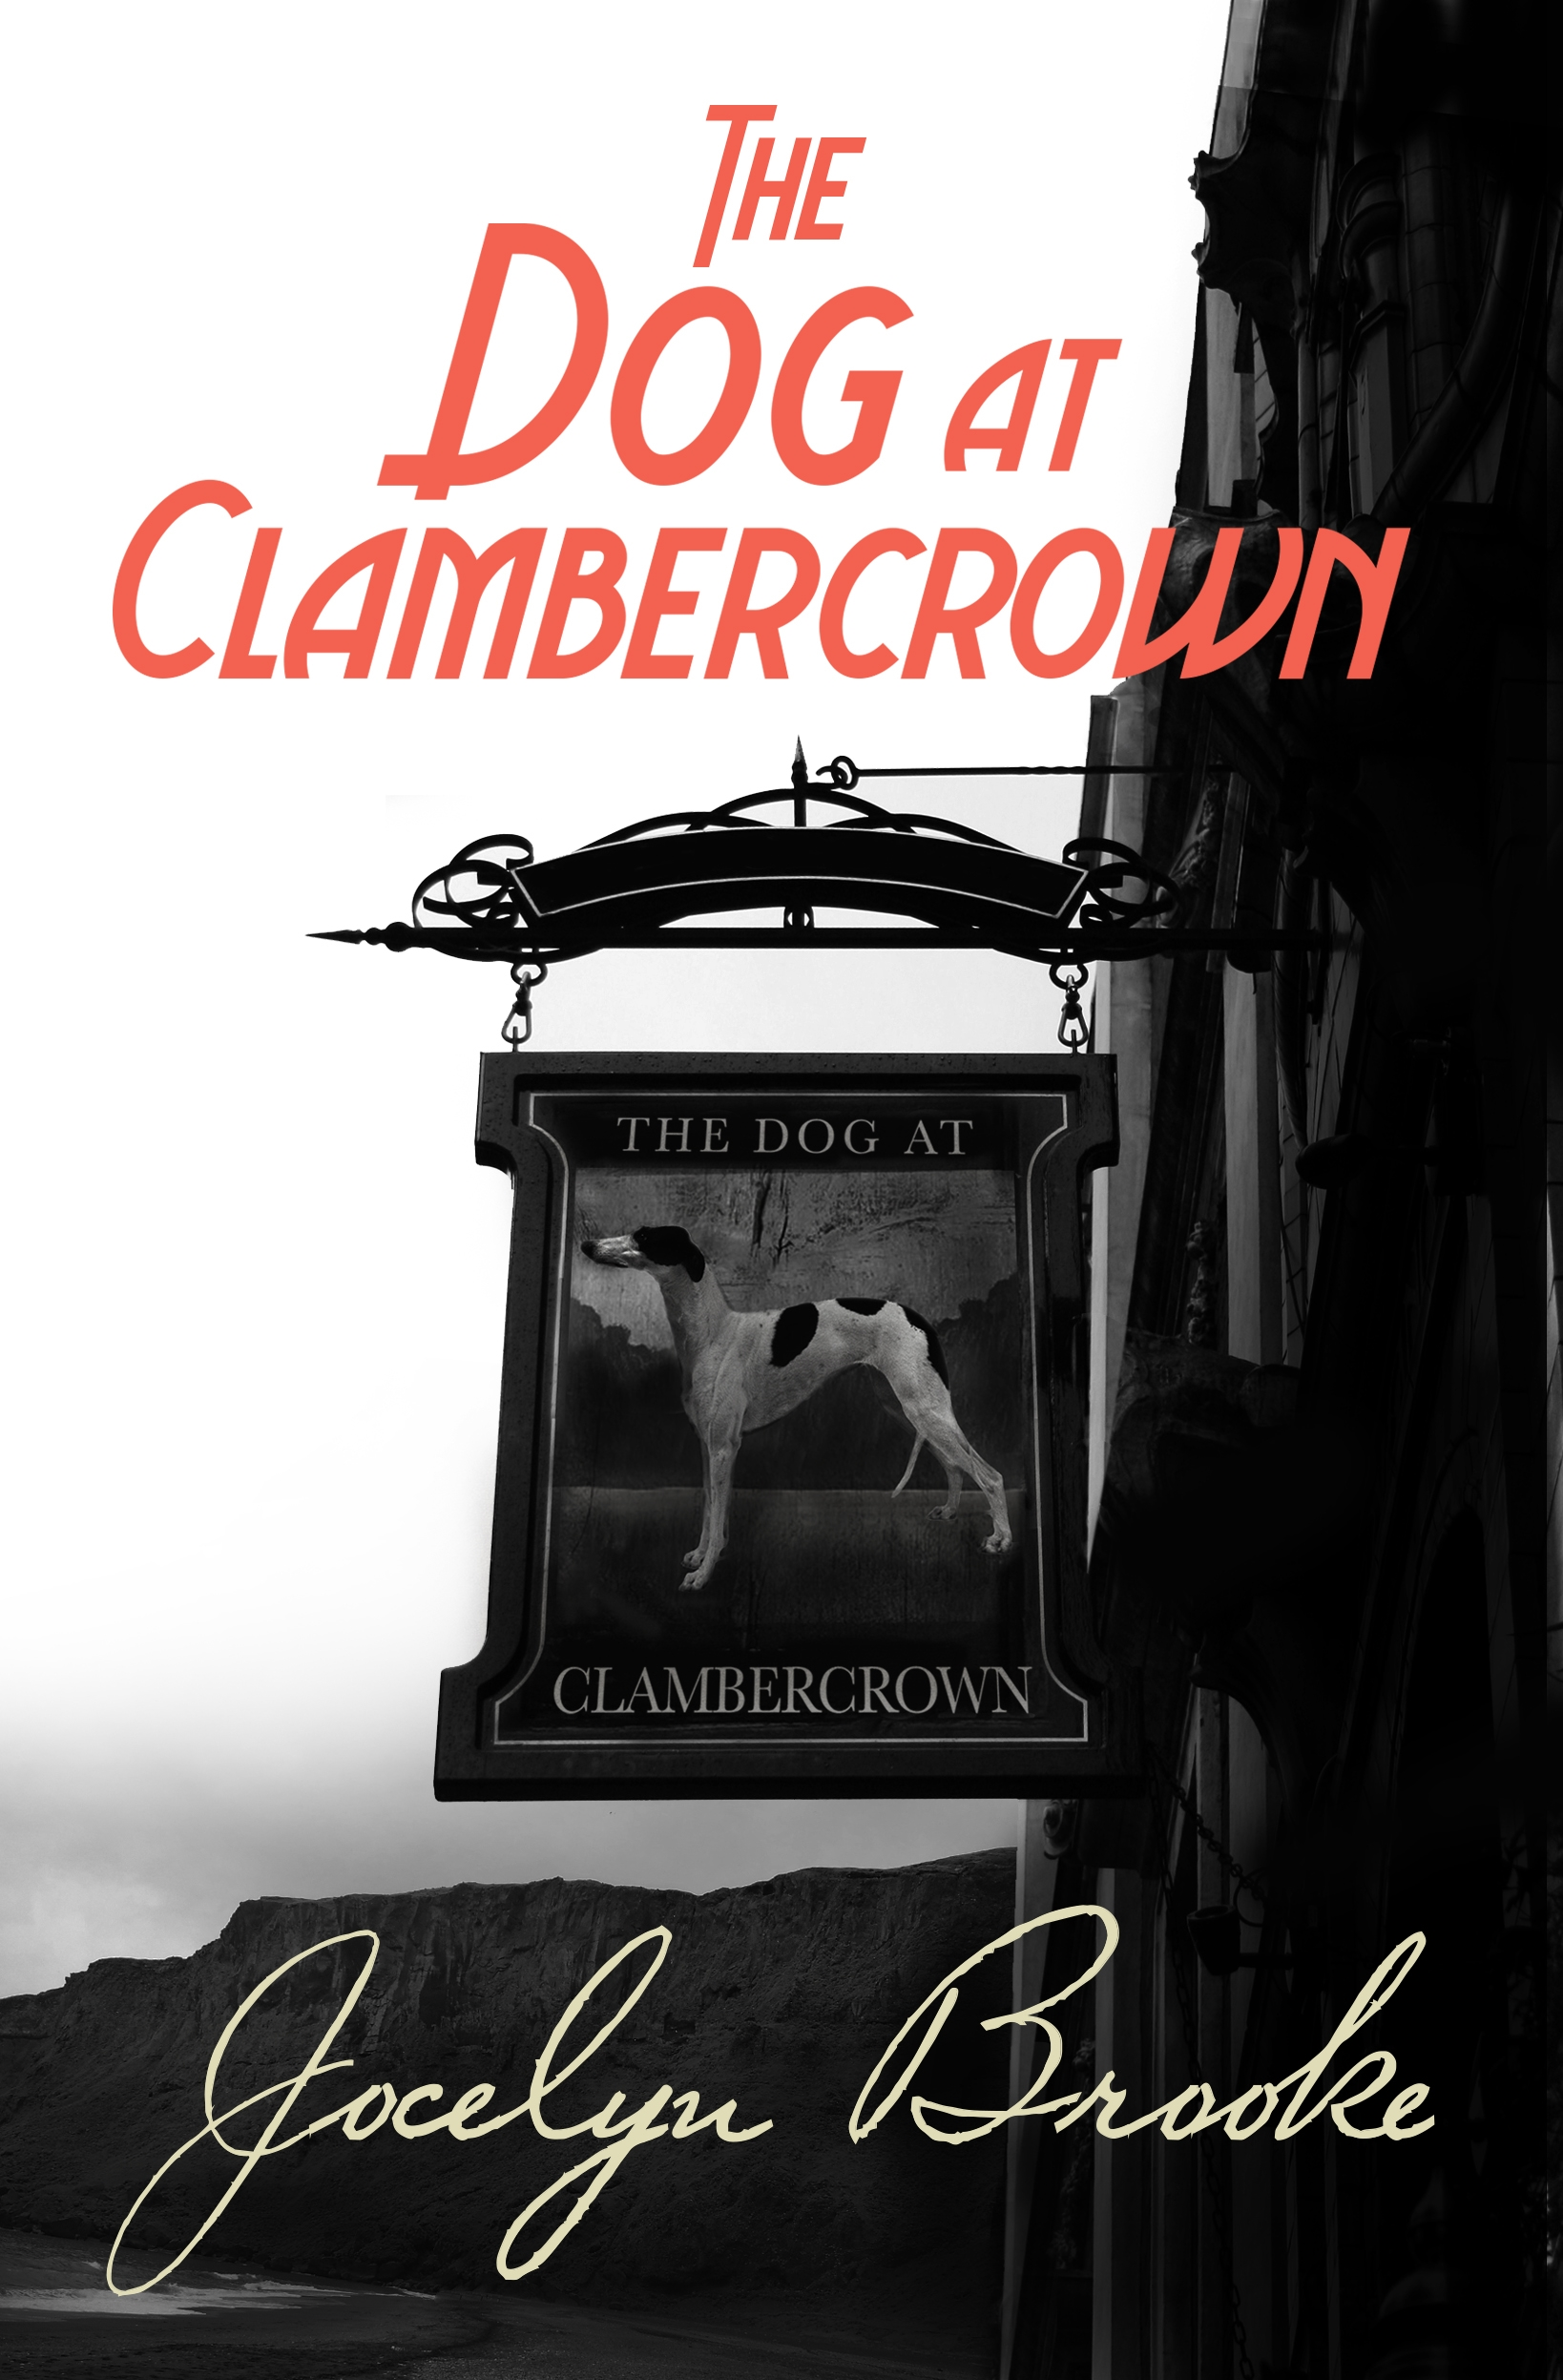 The Dog at Clambercrown